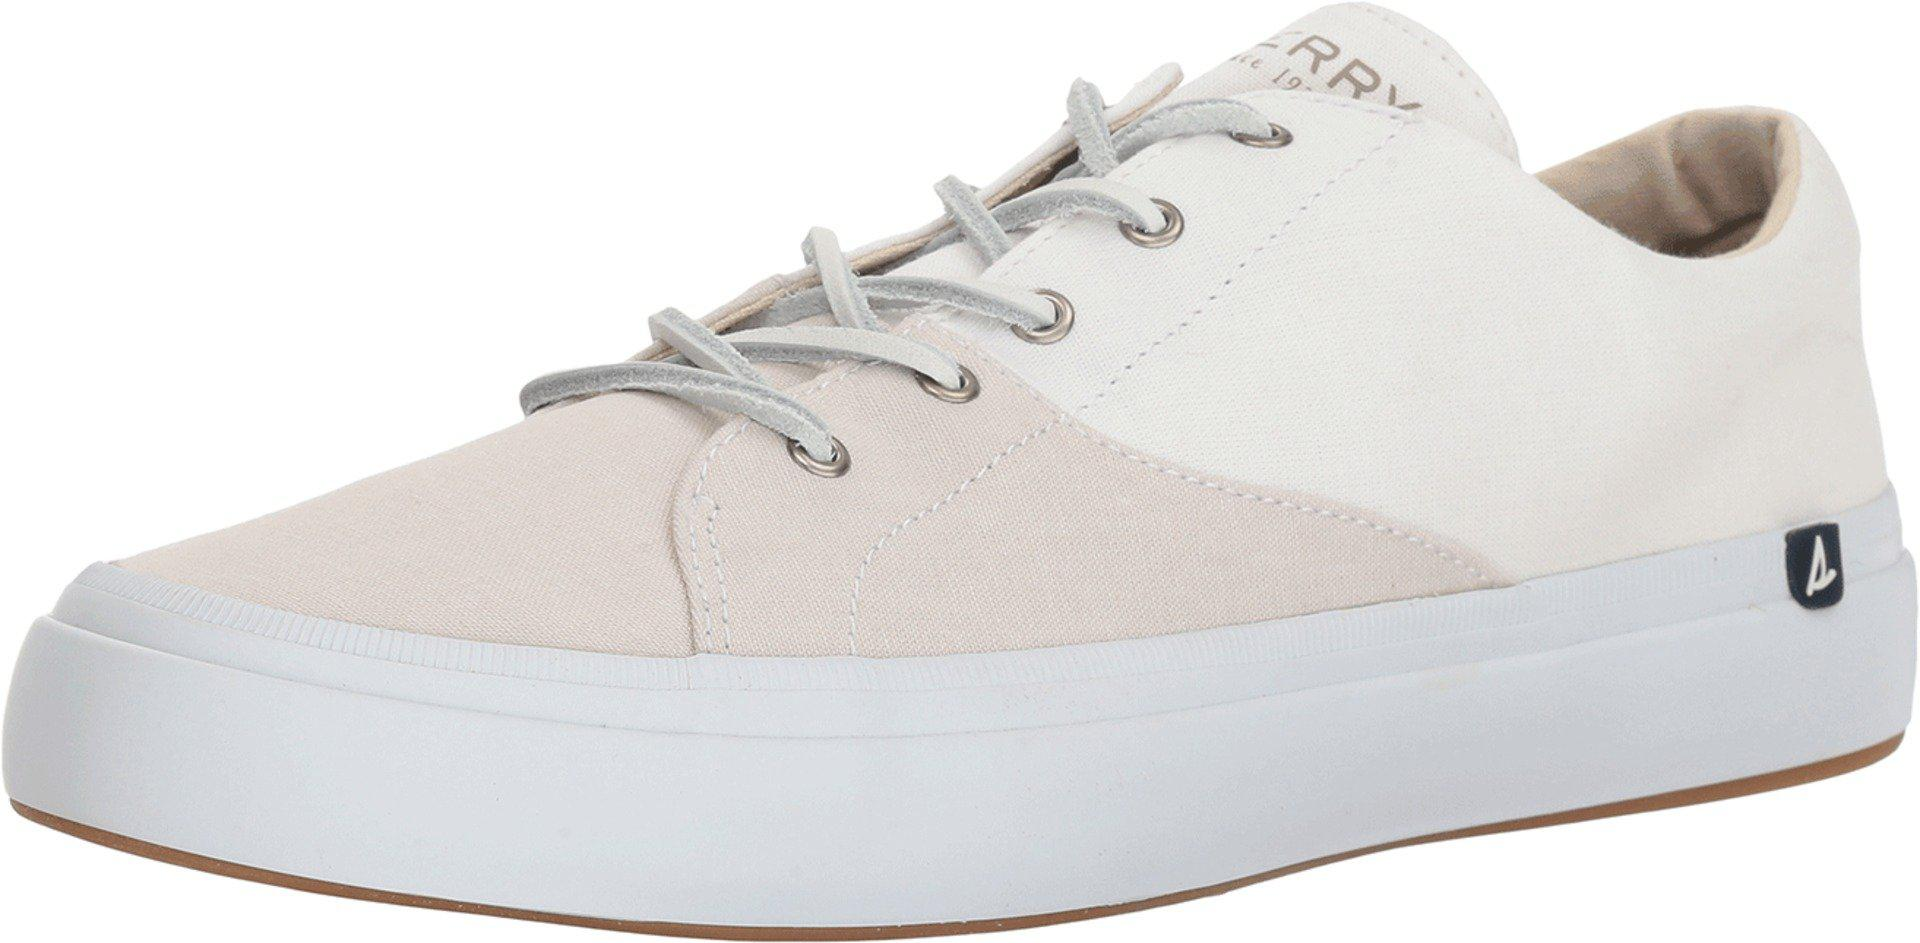 Sperry Haven Lace-Up Fv3vcL